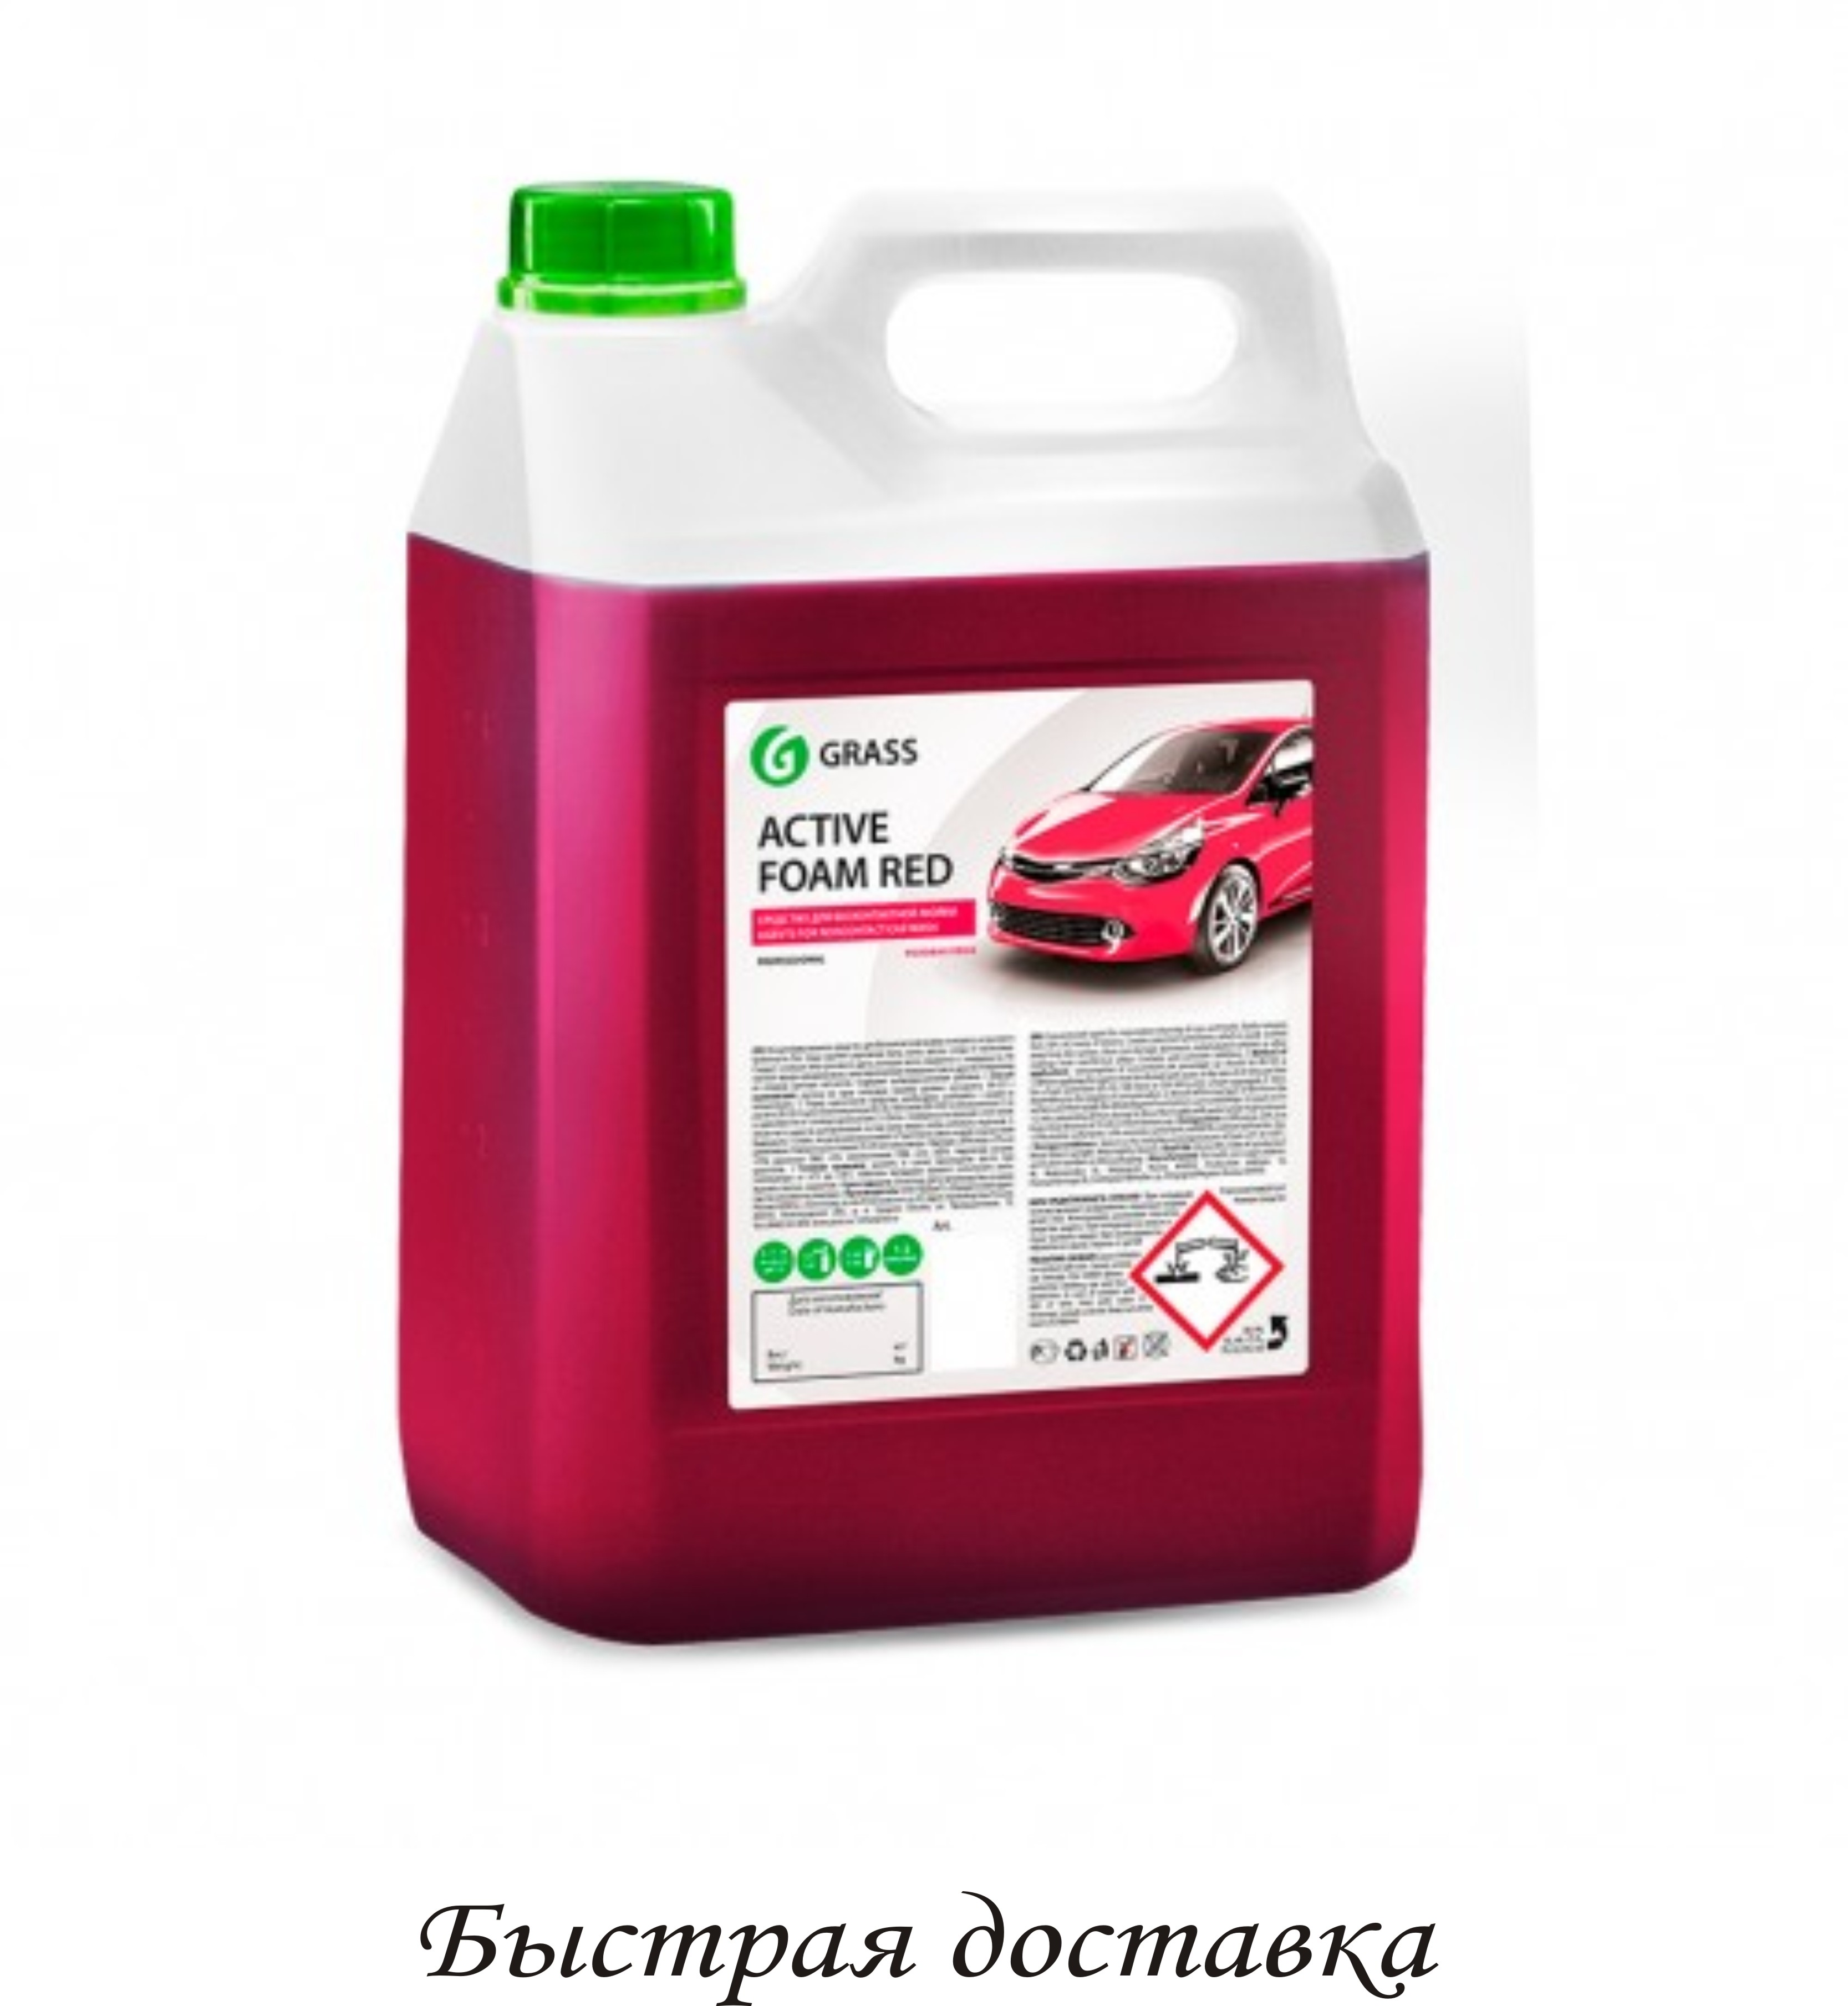 Car shampoo-foam non-contact grass active foam red red. . 5,8. Fast shipping.